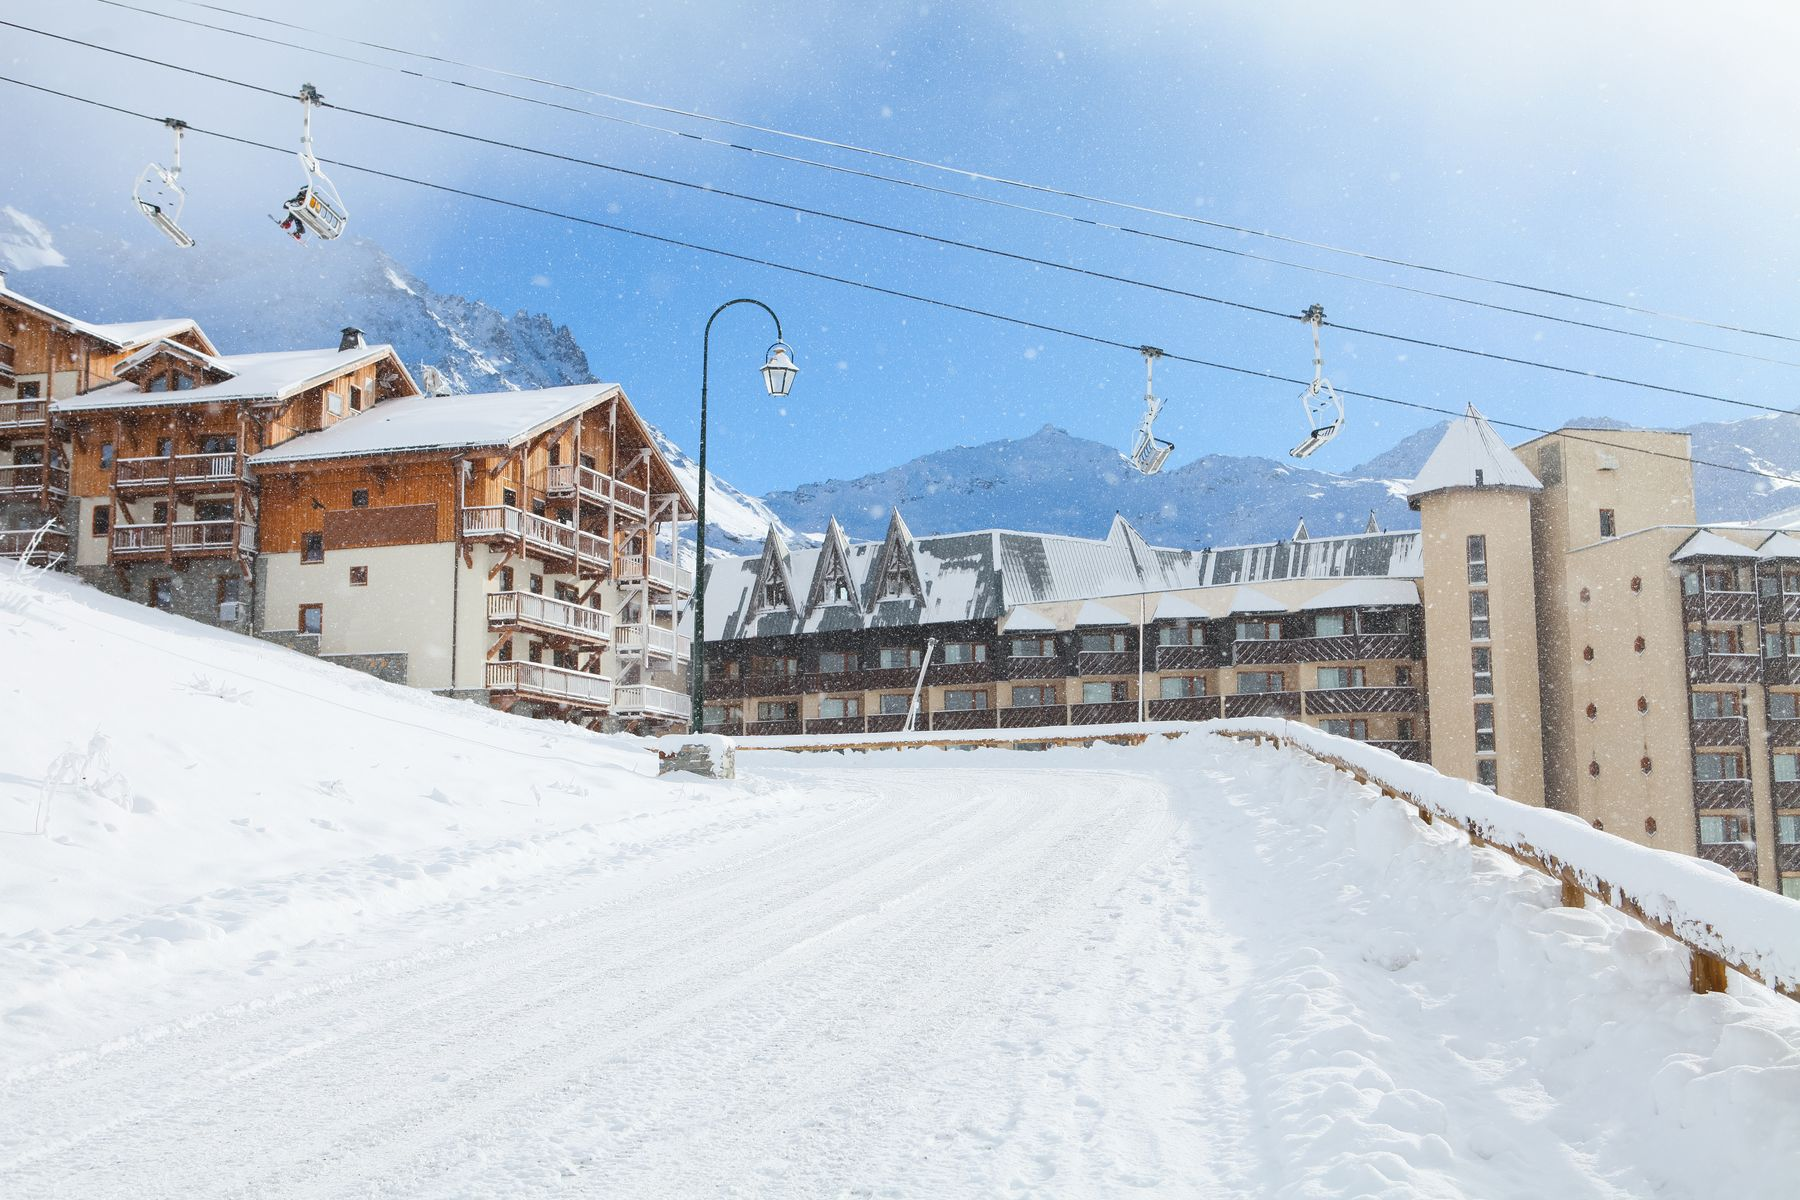 View of a chalet hotel with a ski lift running past it and a snowy road in the foreground